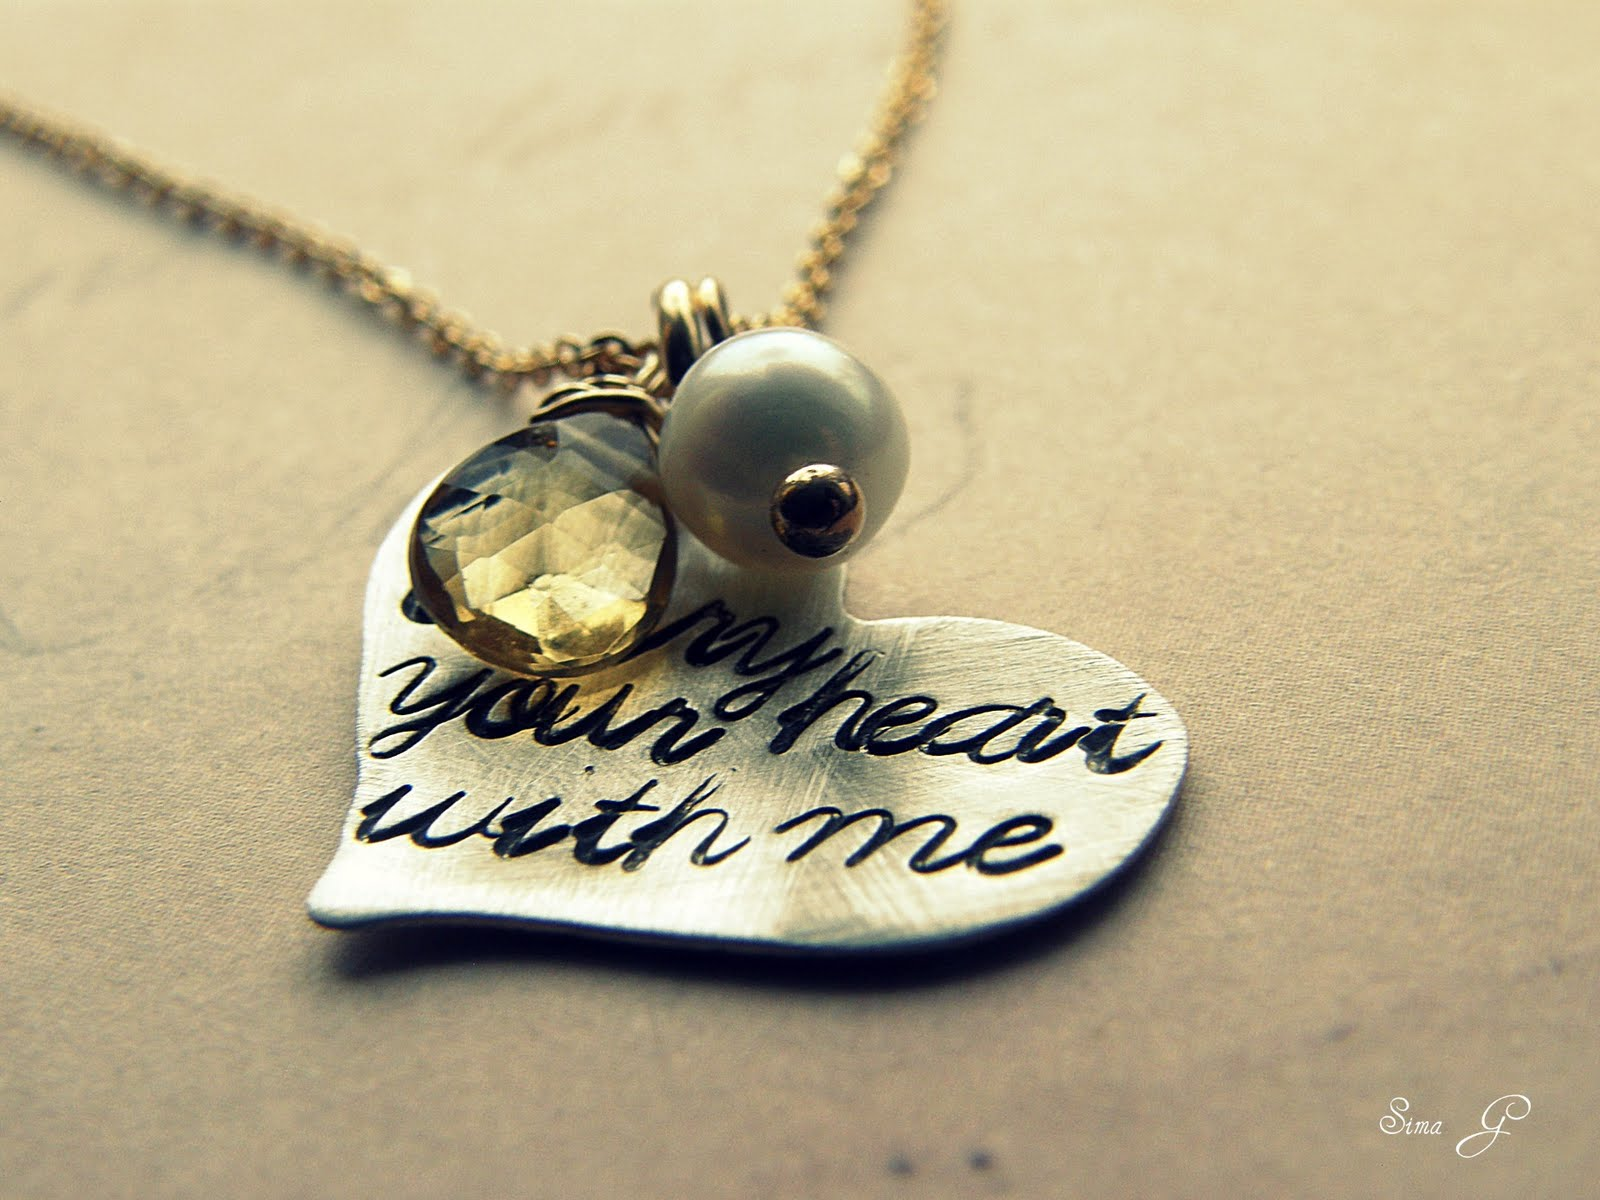 ♥ SimaG Personalized Jewelry ♥: i carry your heart with me ...